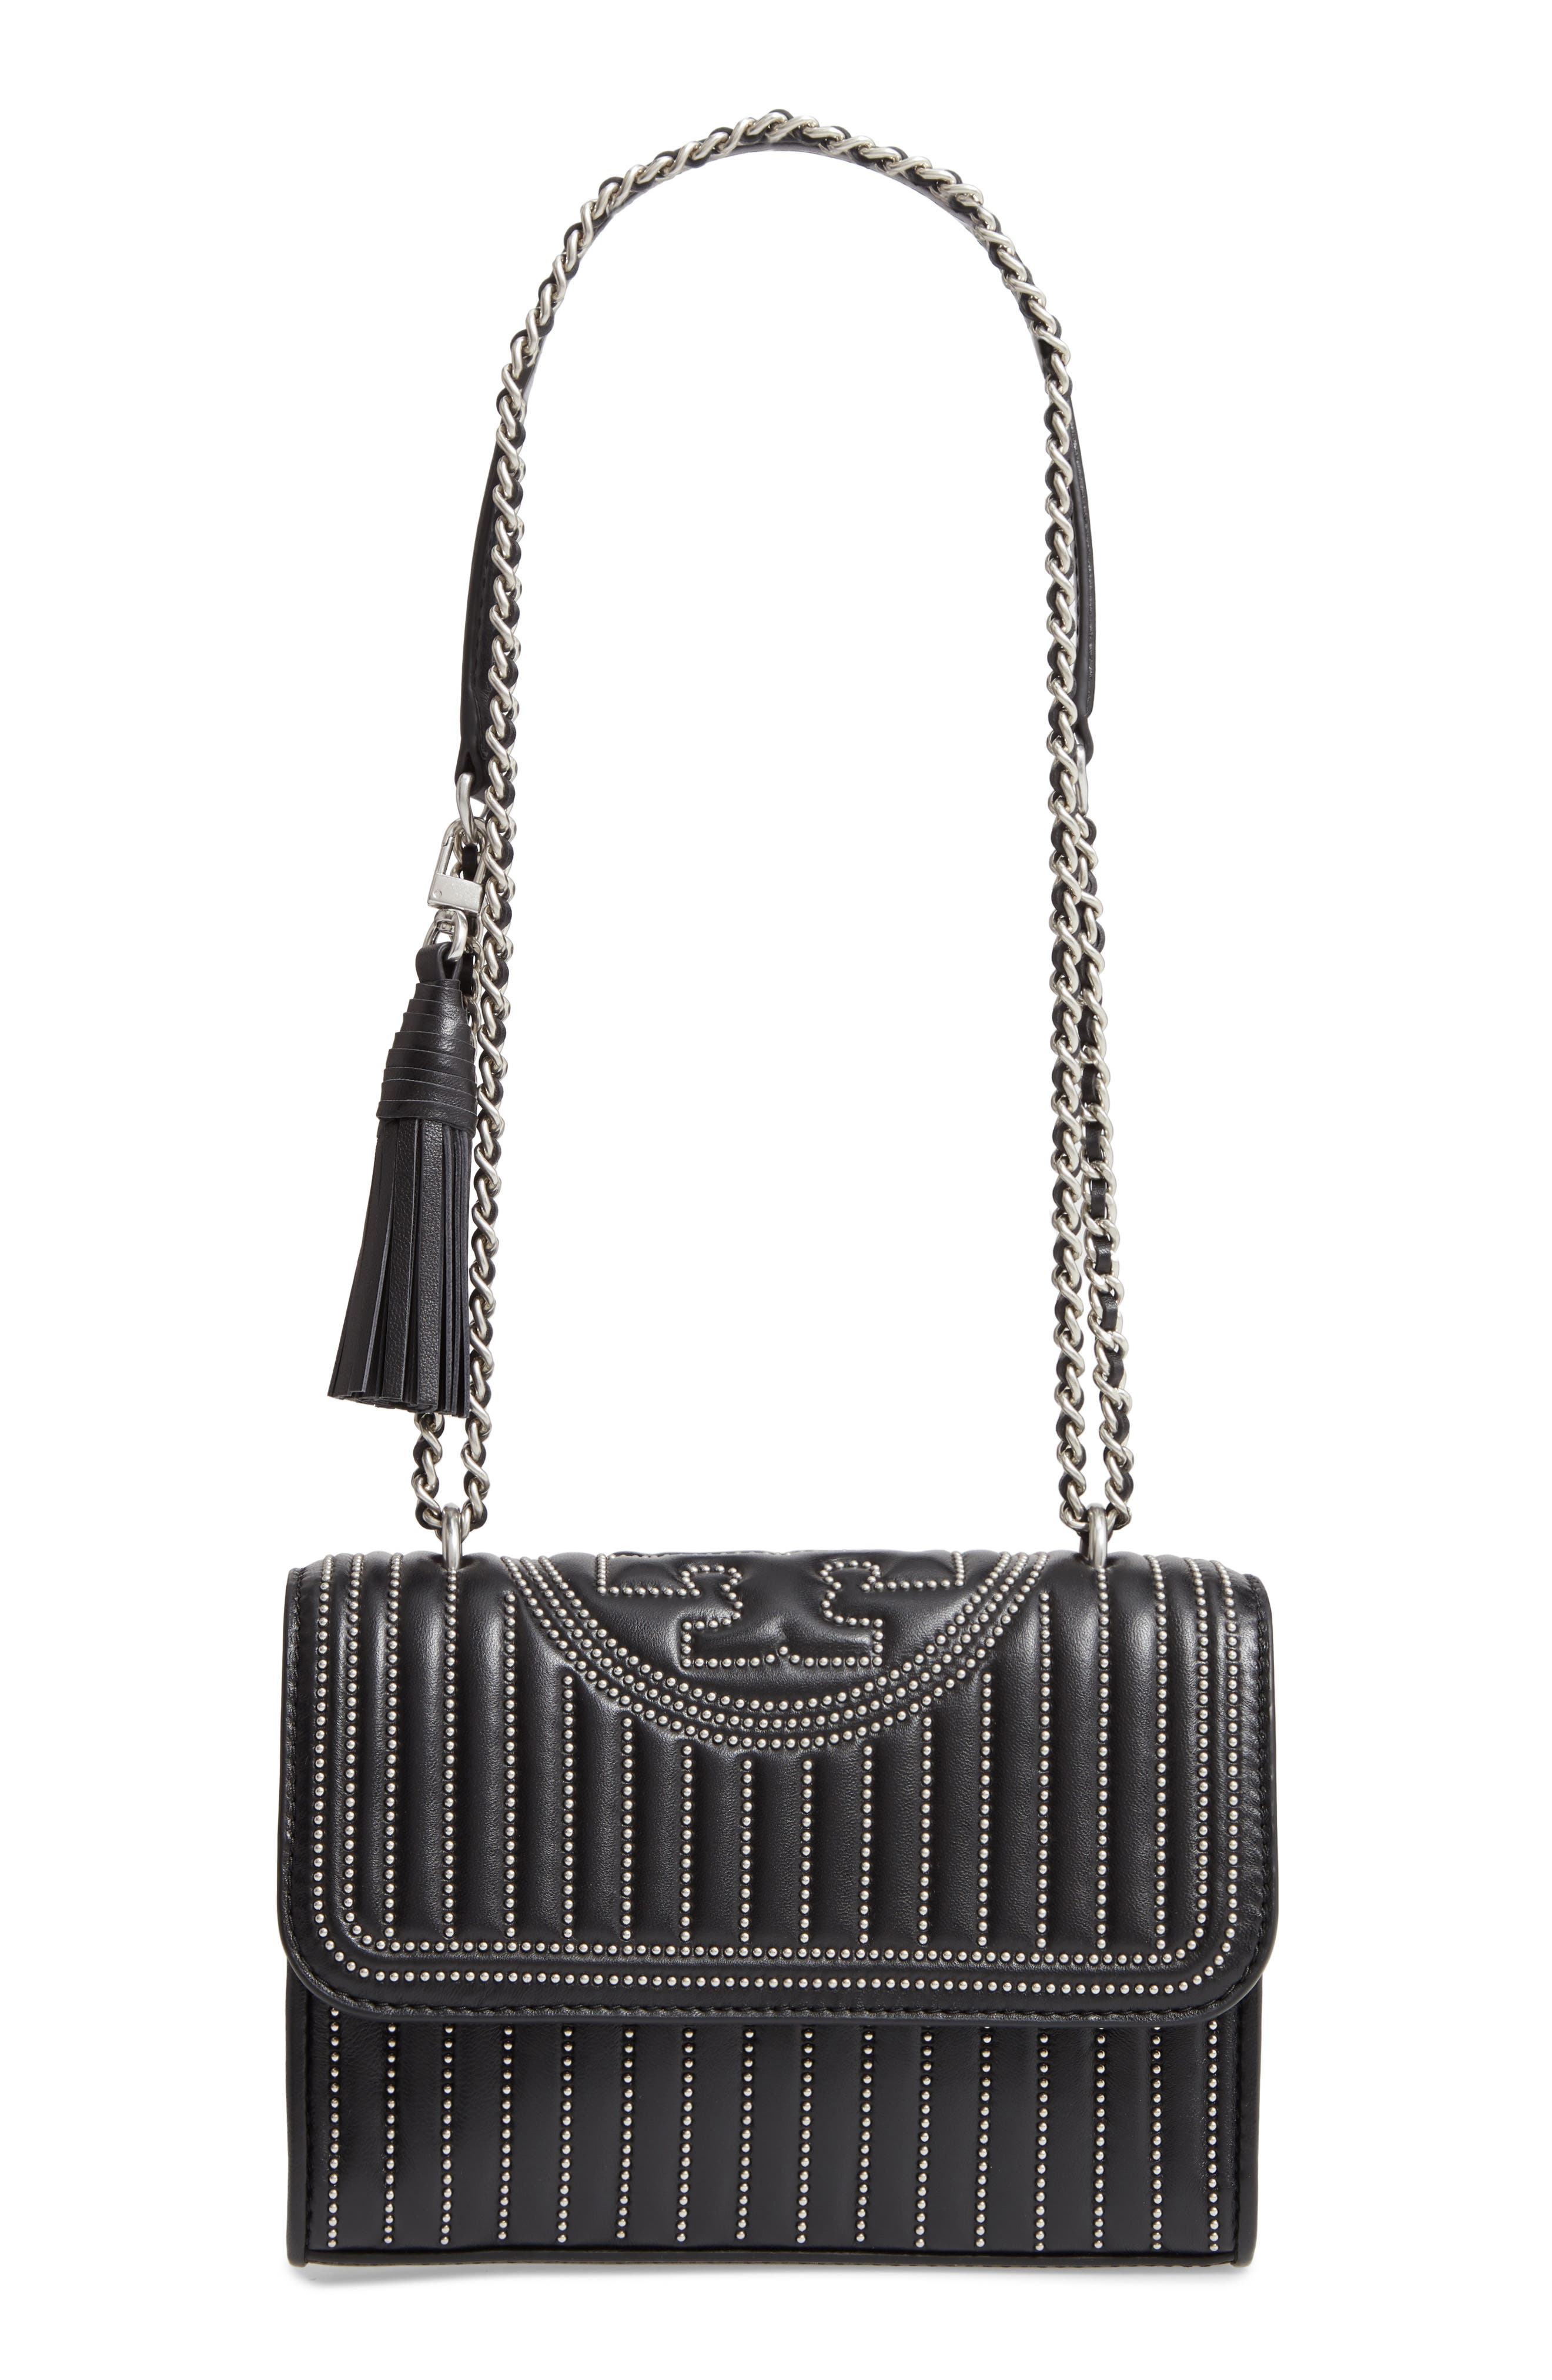 TORY BURCH,                             Small Fleming Studded Leather Convertible Shoulder Bag,                             Main thumbnail 1, color,                             BLACK / SILVER